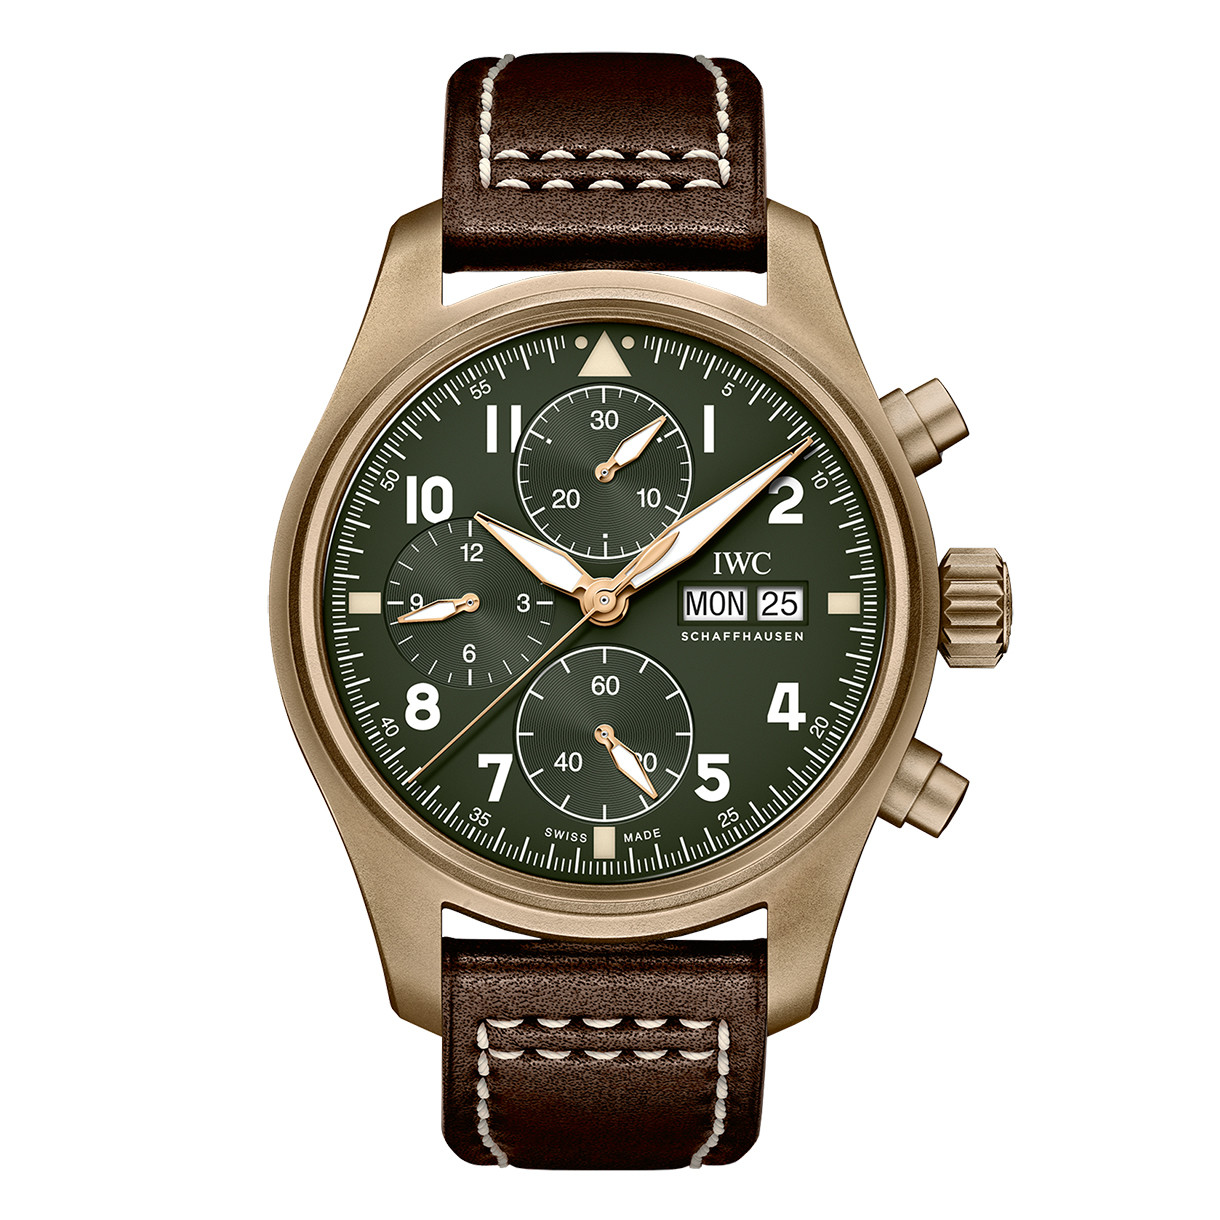 Pilot's Watch Chronograph Spitfire Bronze (IW387902)